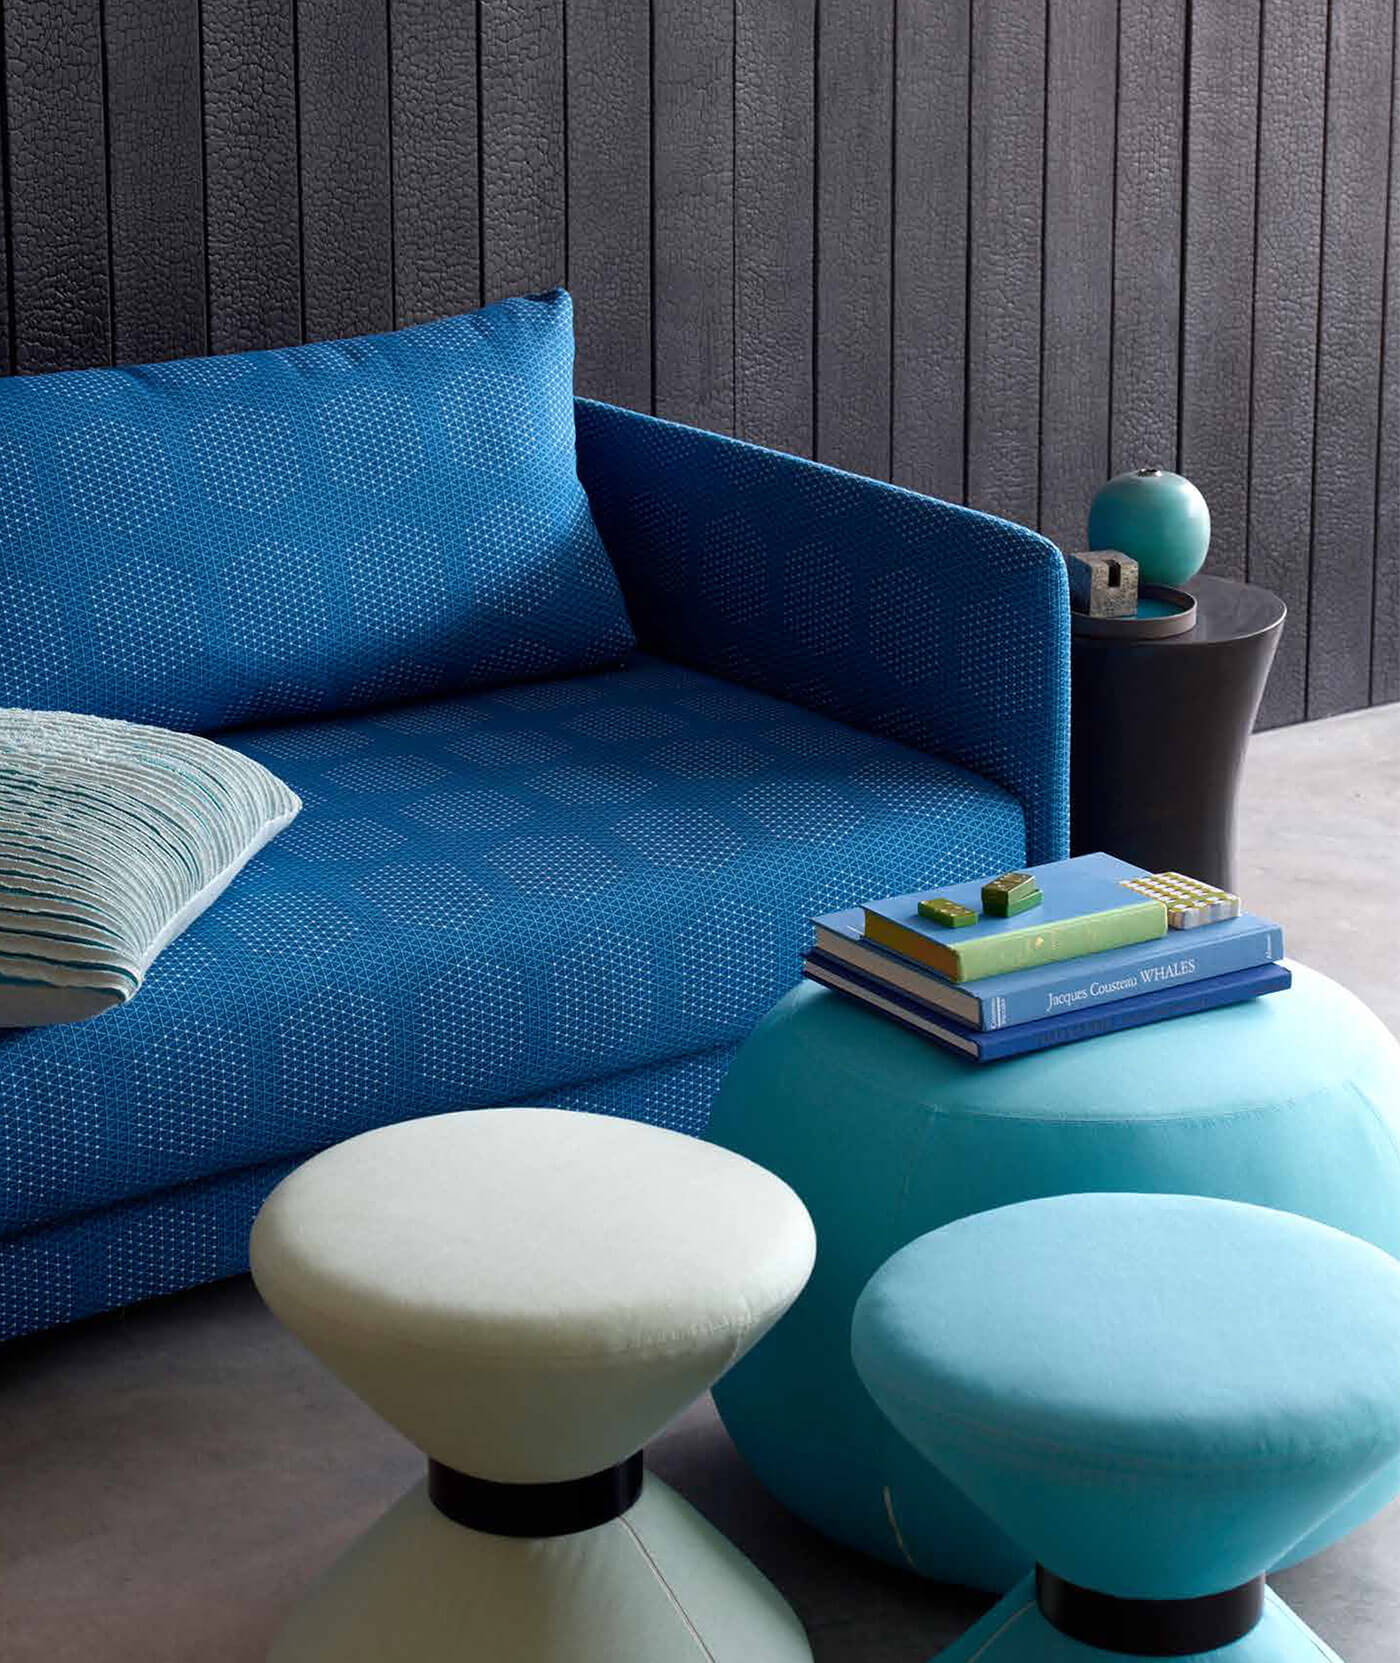 A blue sofa covered in Dot Structure Sunbrella Contract fabric with coordinating teal and white poufs